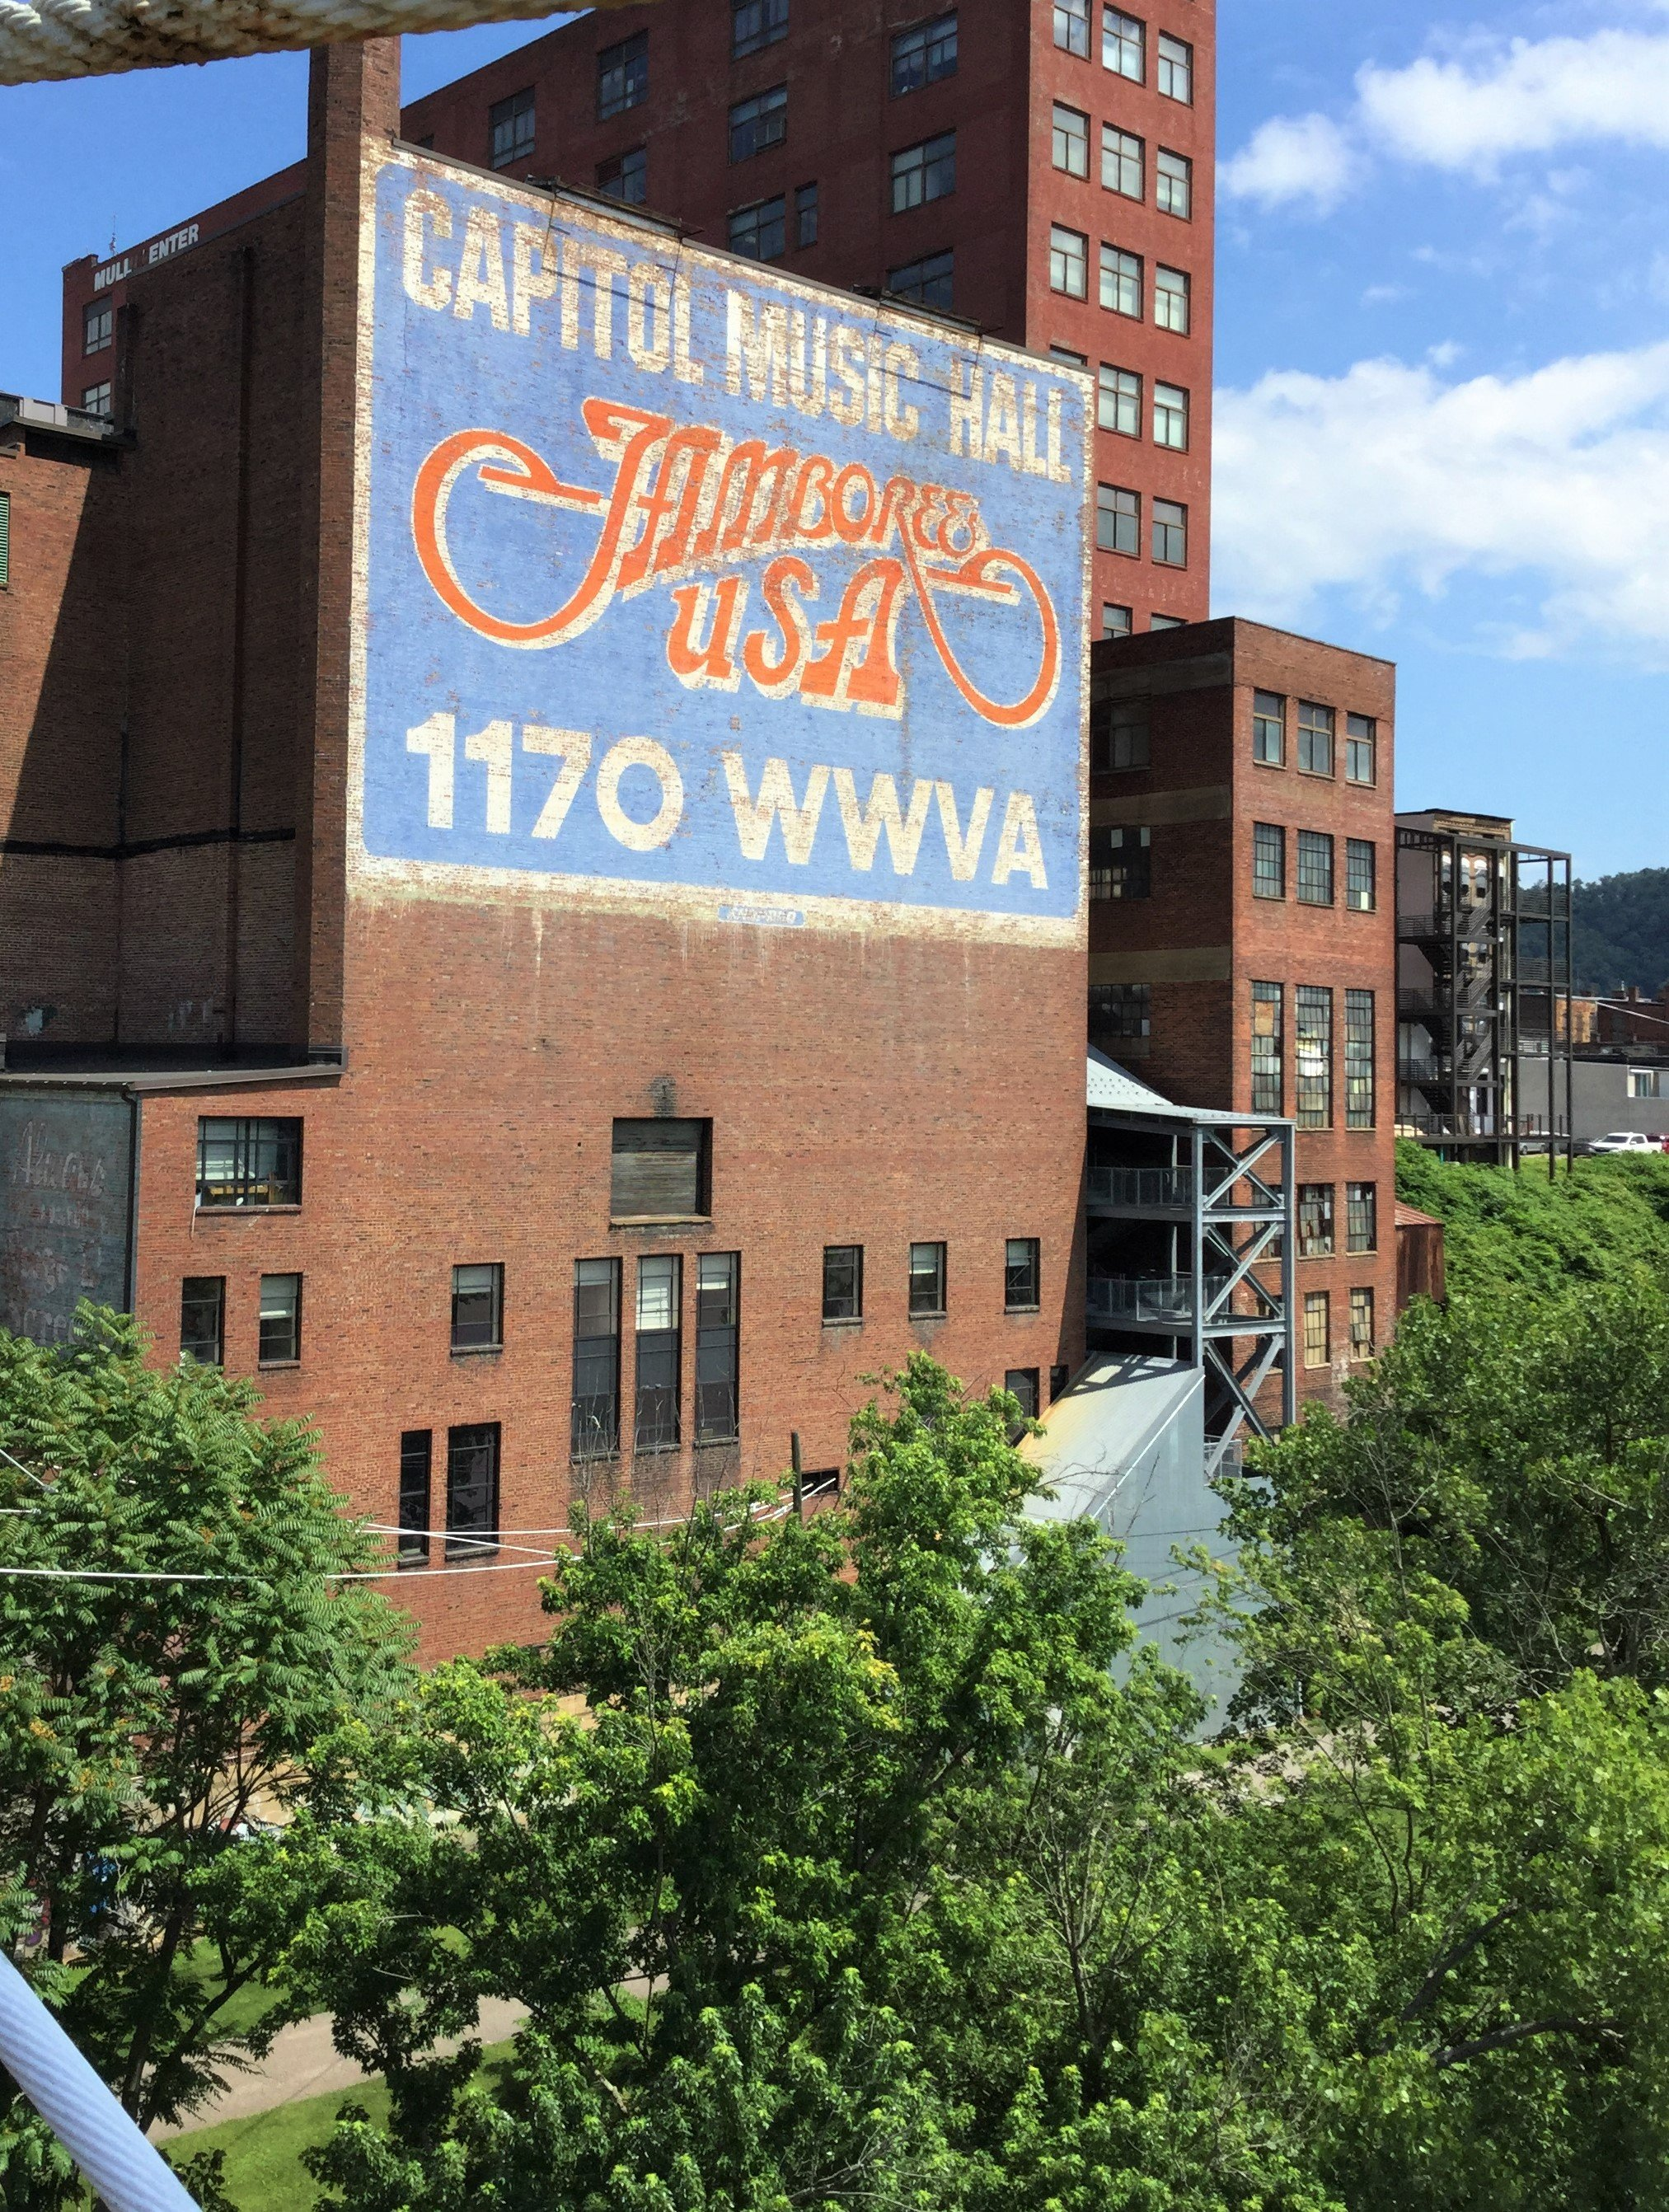 Visitors crossing the suspension bridge into Wheeling see this sign, a reference to the country music radio show first broadcast in 1933 on 1170 am. This 50,000 watt station that covered most of the country east of the Mississippi.